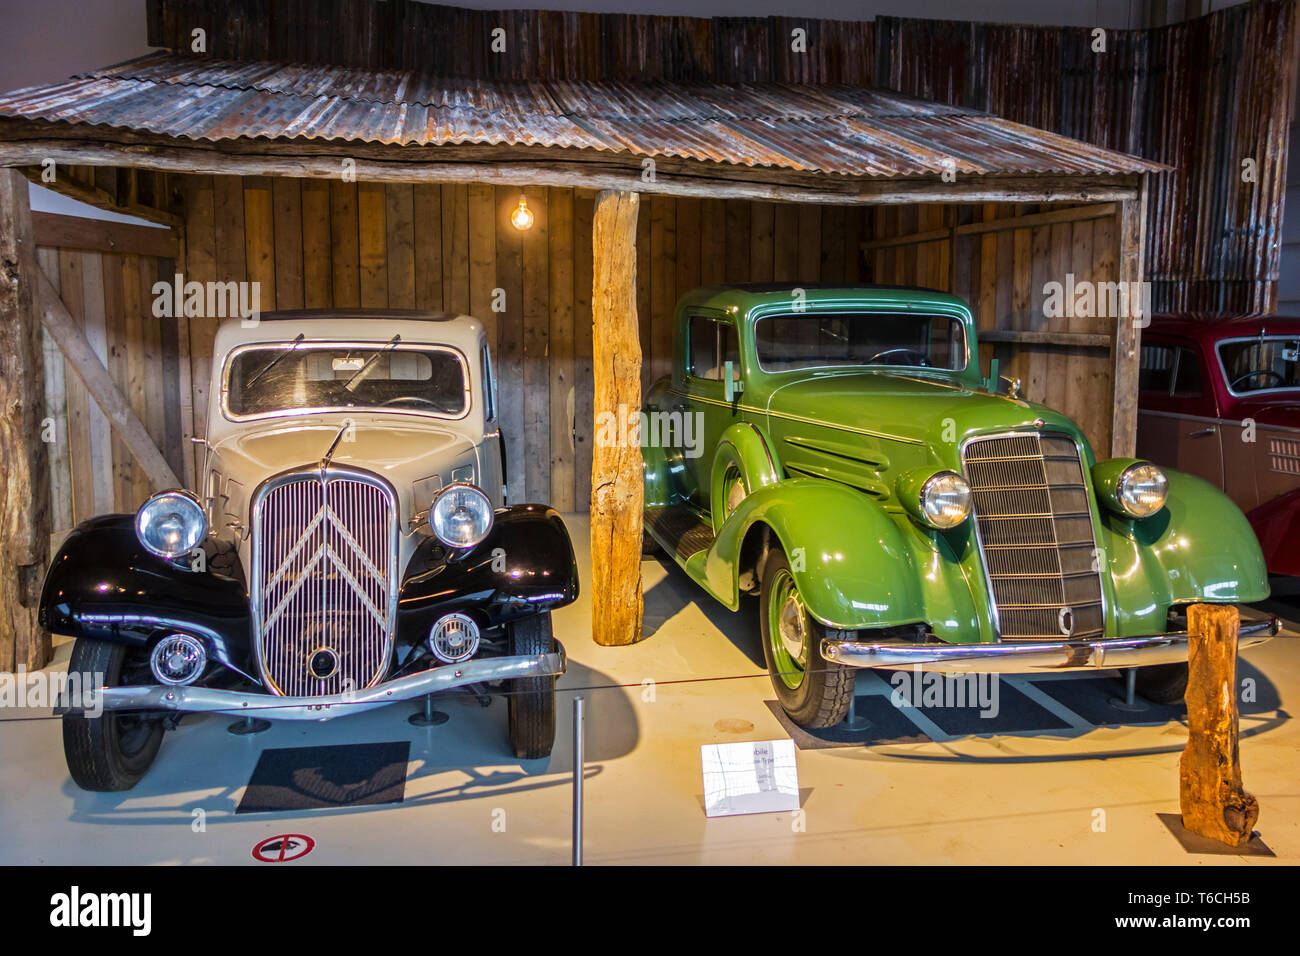 Vintage Cars Collection Stock Photos Vintage Cars Collection Stock